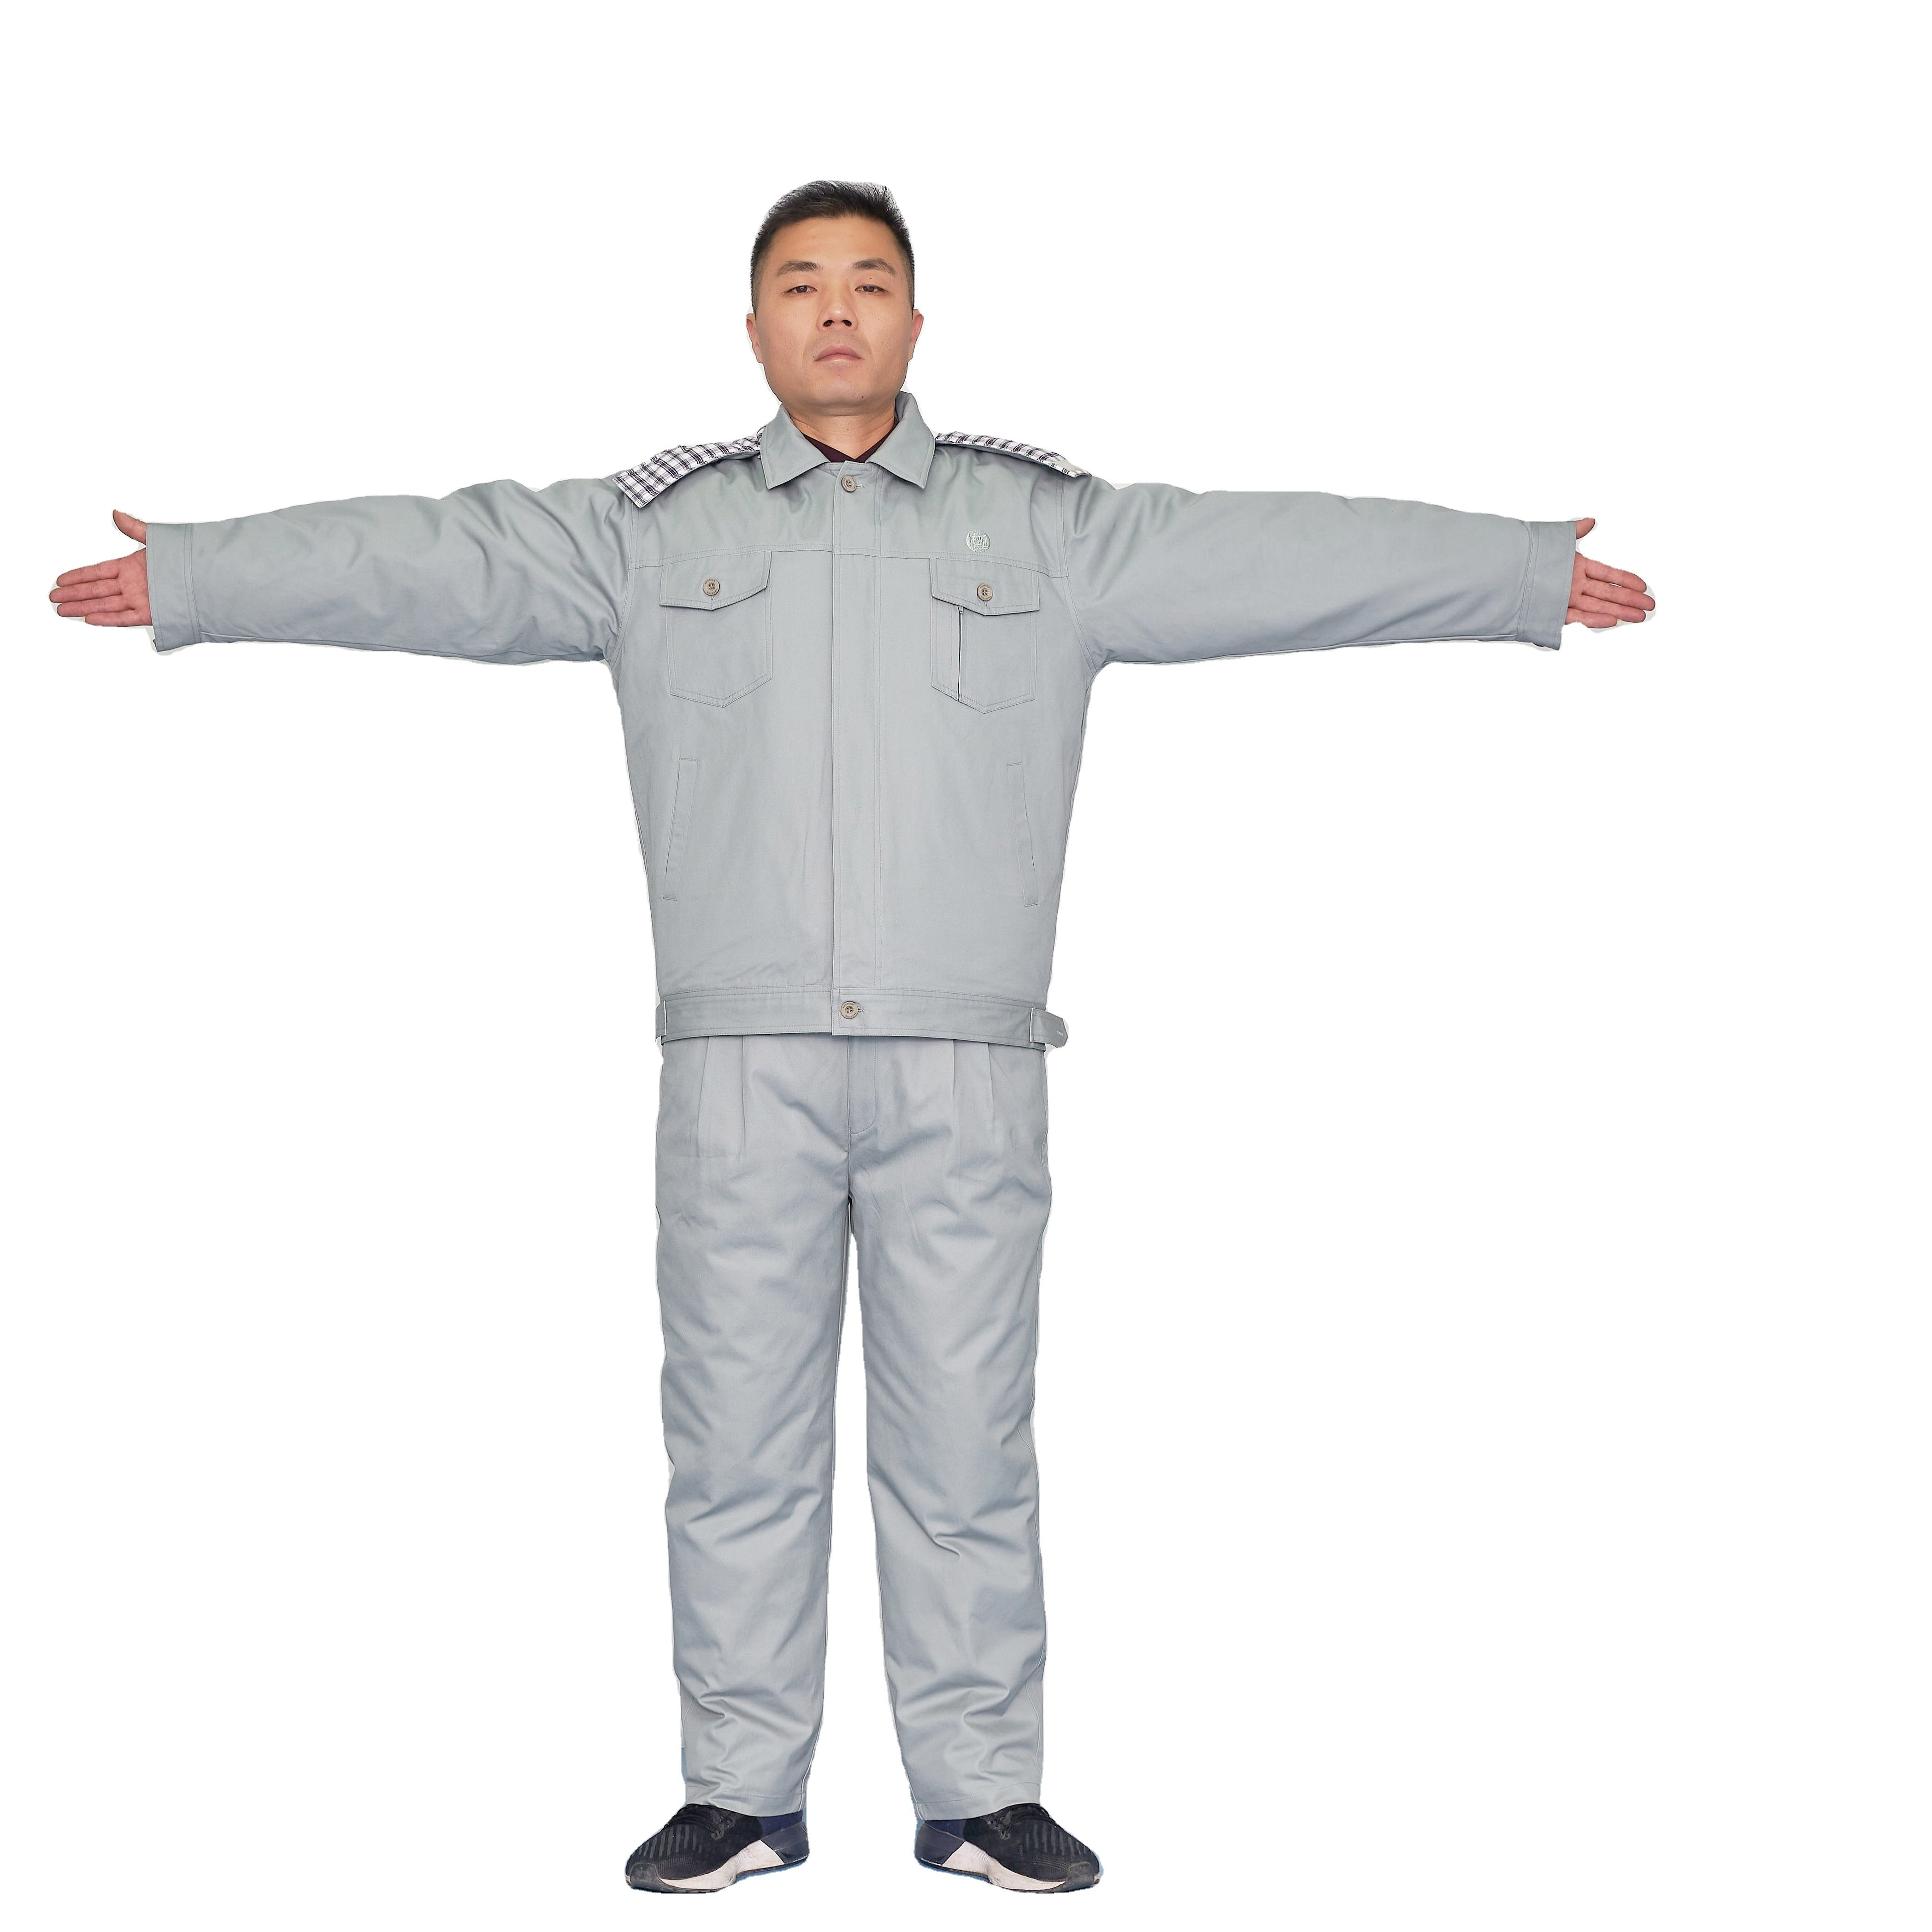 Warm Winter Coverall Suits Manufacturers Selling Clothes Removable Type Work Clothes Support For Custom Workwear